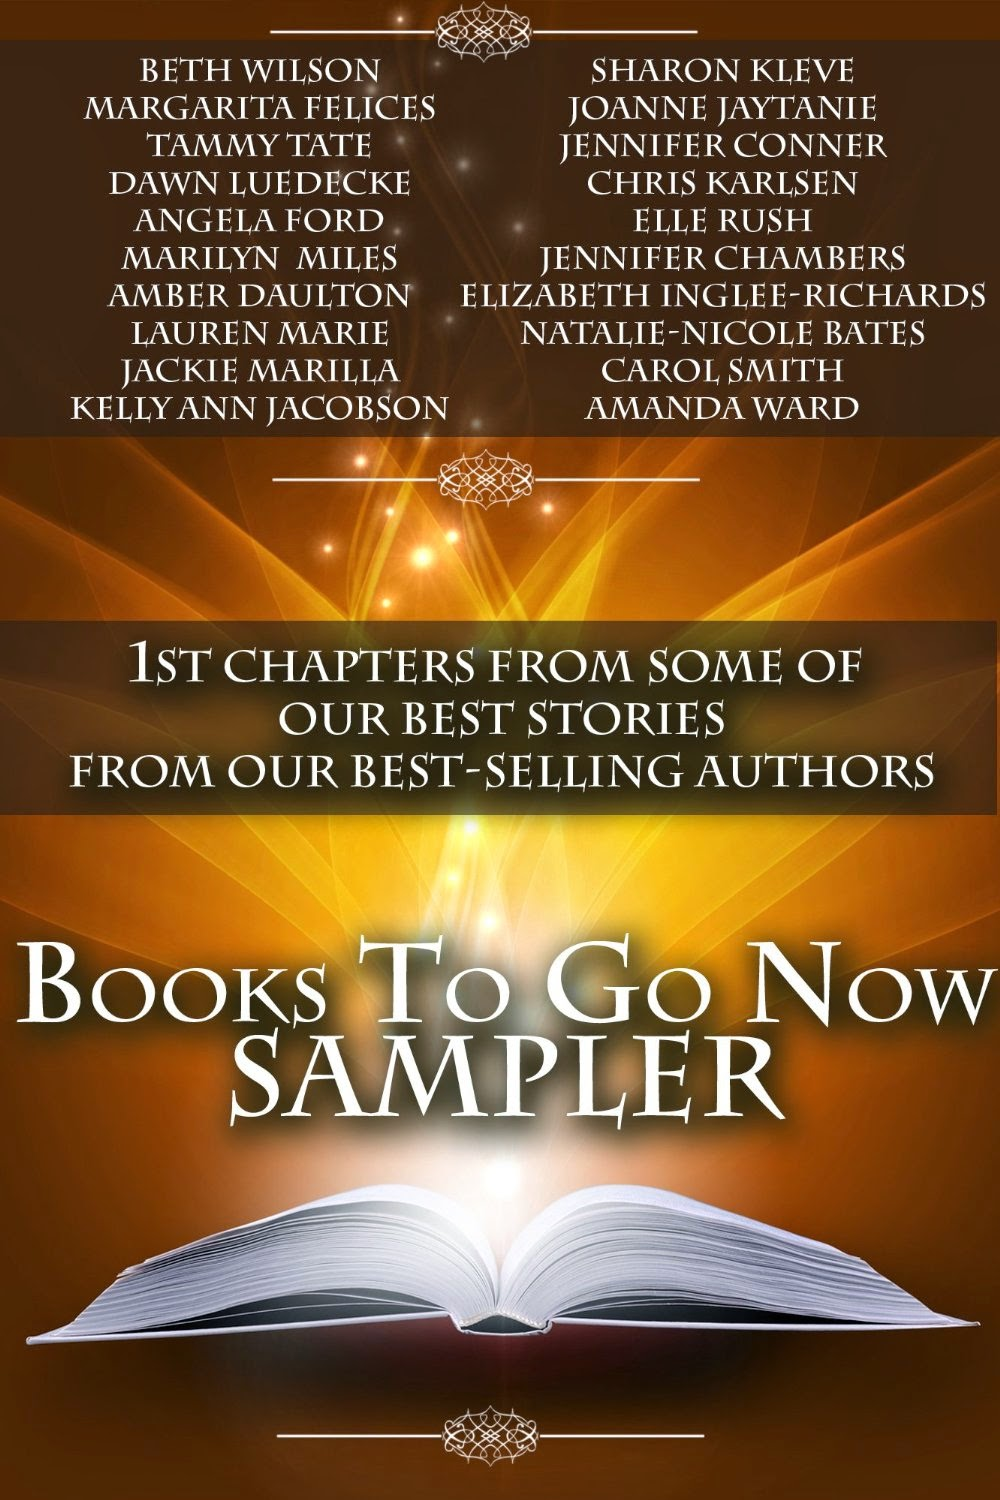 http://www.amazon.com/Jump-into-Fall-Sampler-Books-ebook/dp/B00O145QSW/ref=sr_1_28?s=books&ie=UTF8&qid=1421614321&sr=1-28&keywords=sharon+kleve